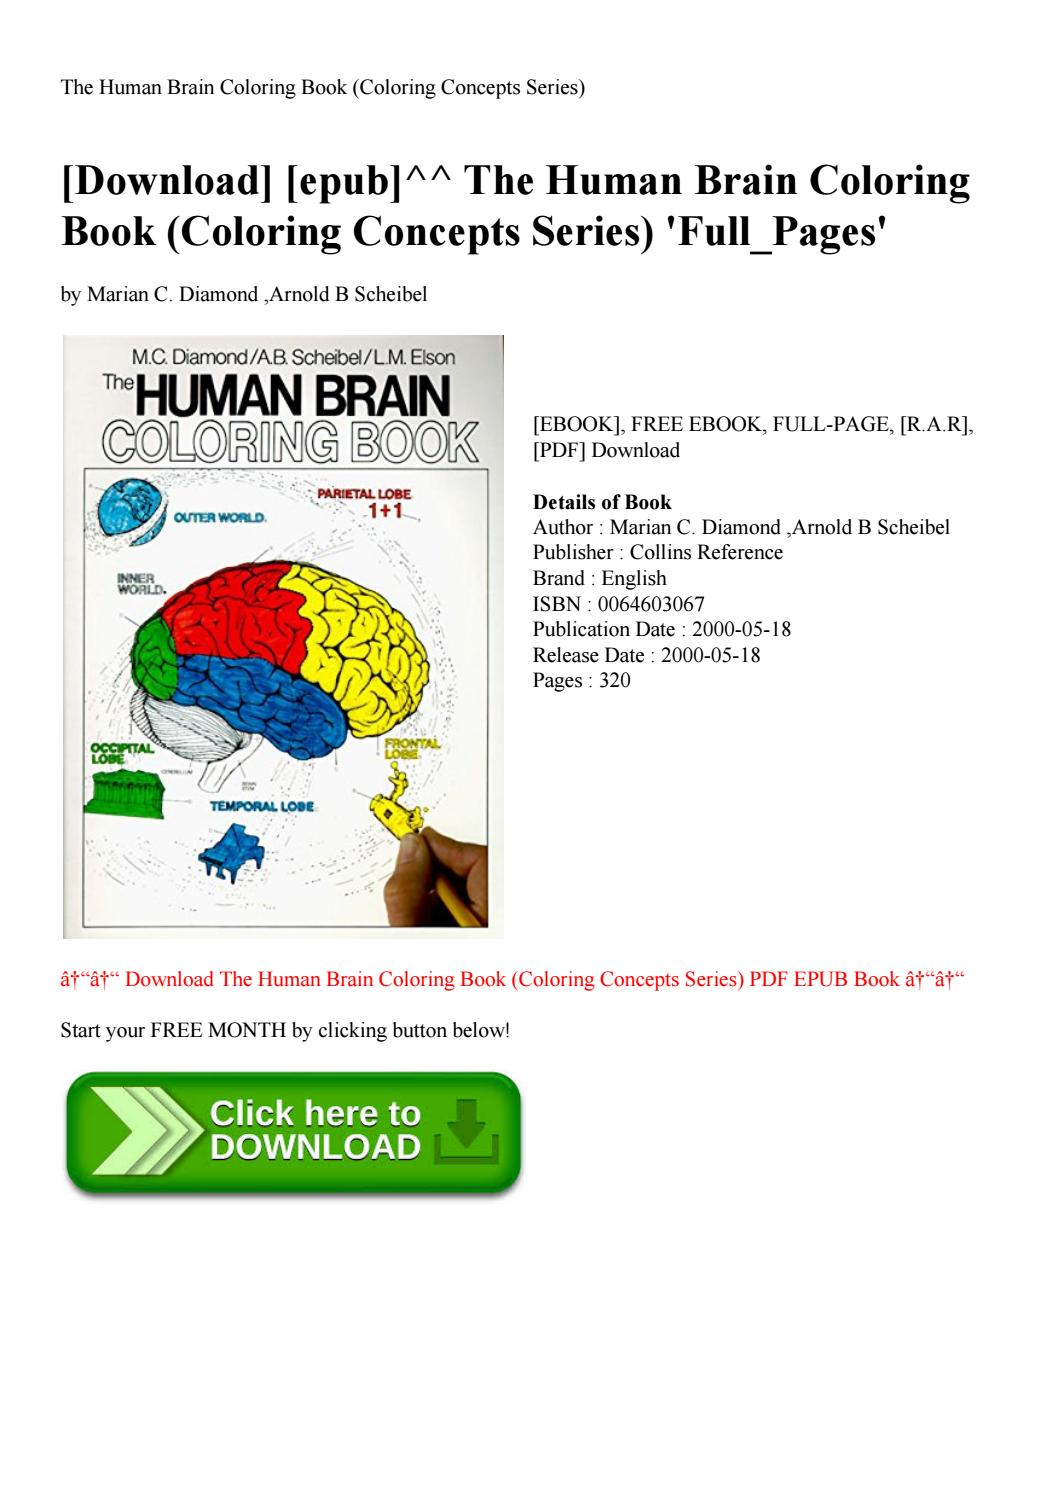 Download] [epub]^^ The Human Brain Coloring Book (coloring